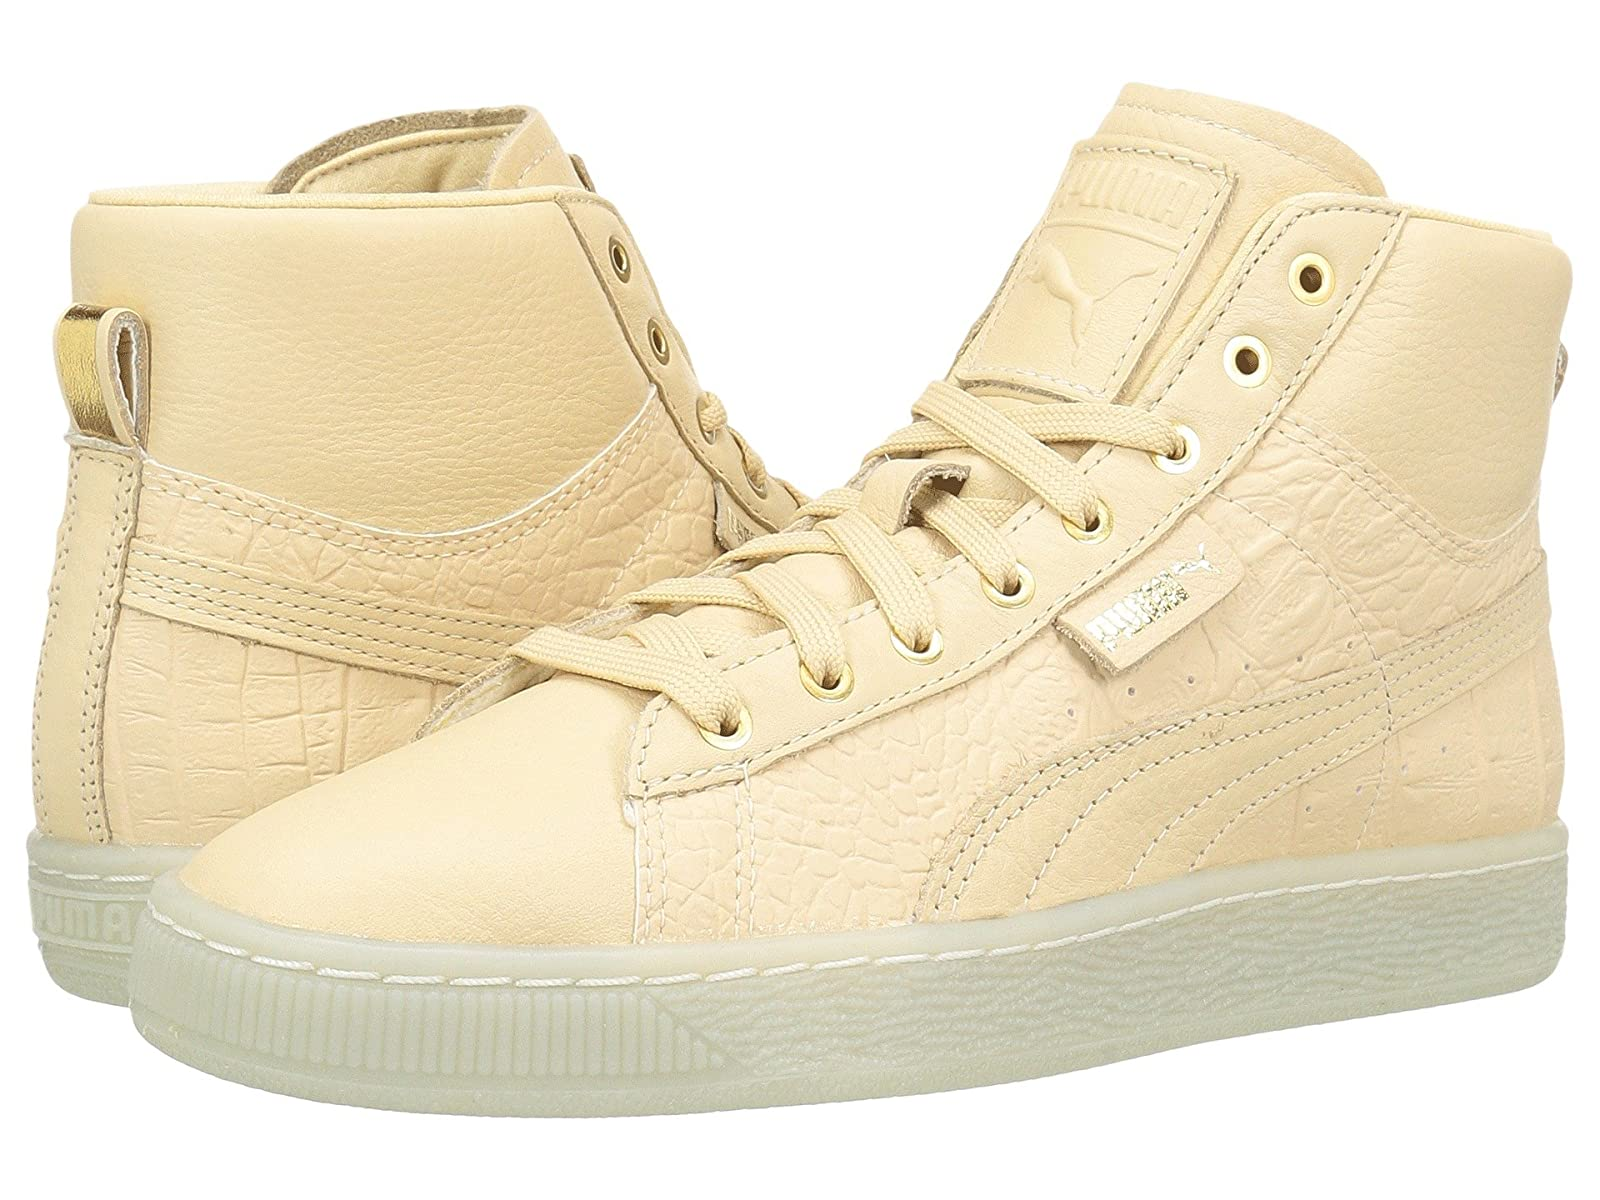 PUMA Basket Mid AliCheap and distinctive eye-catching shoes